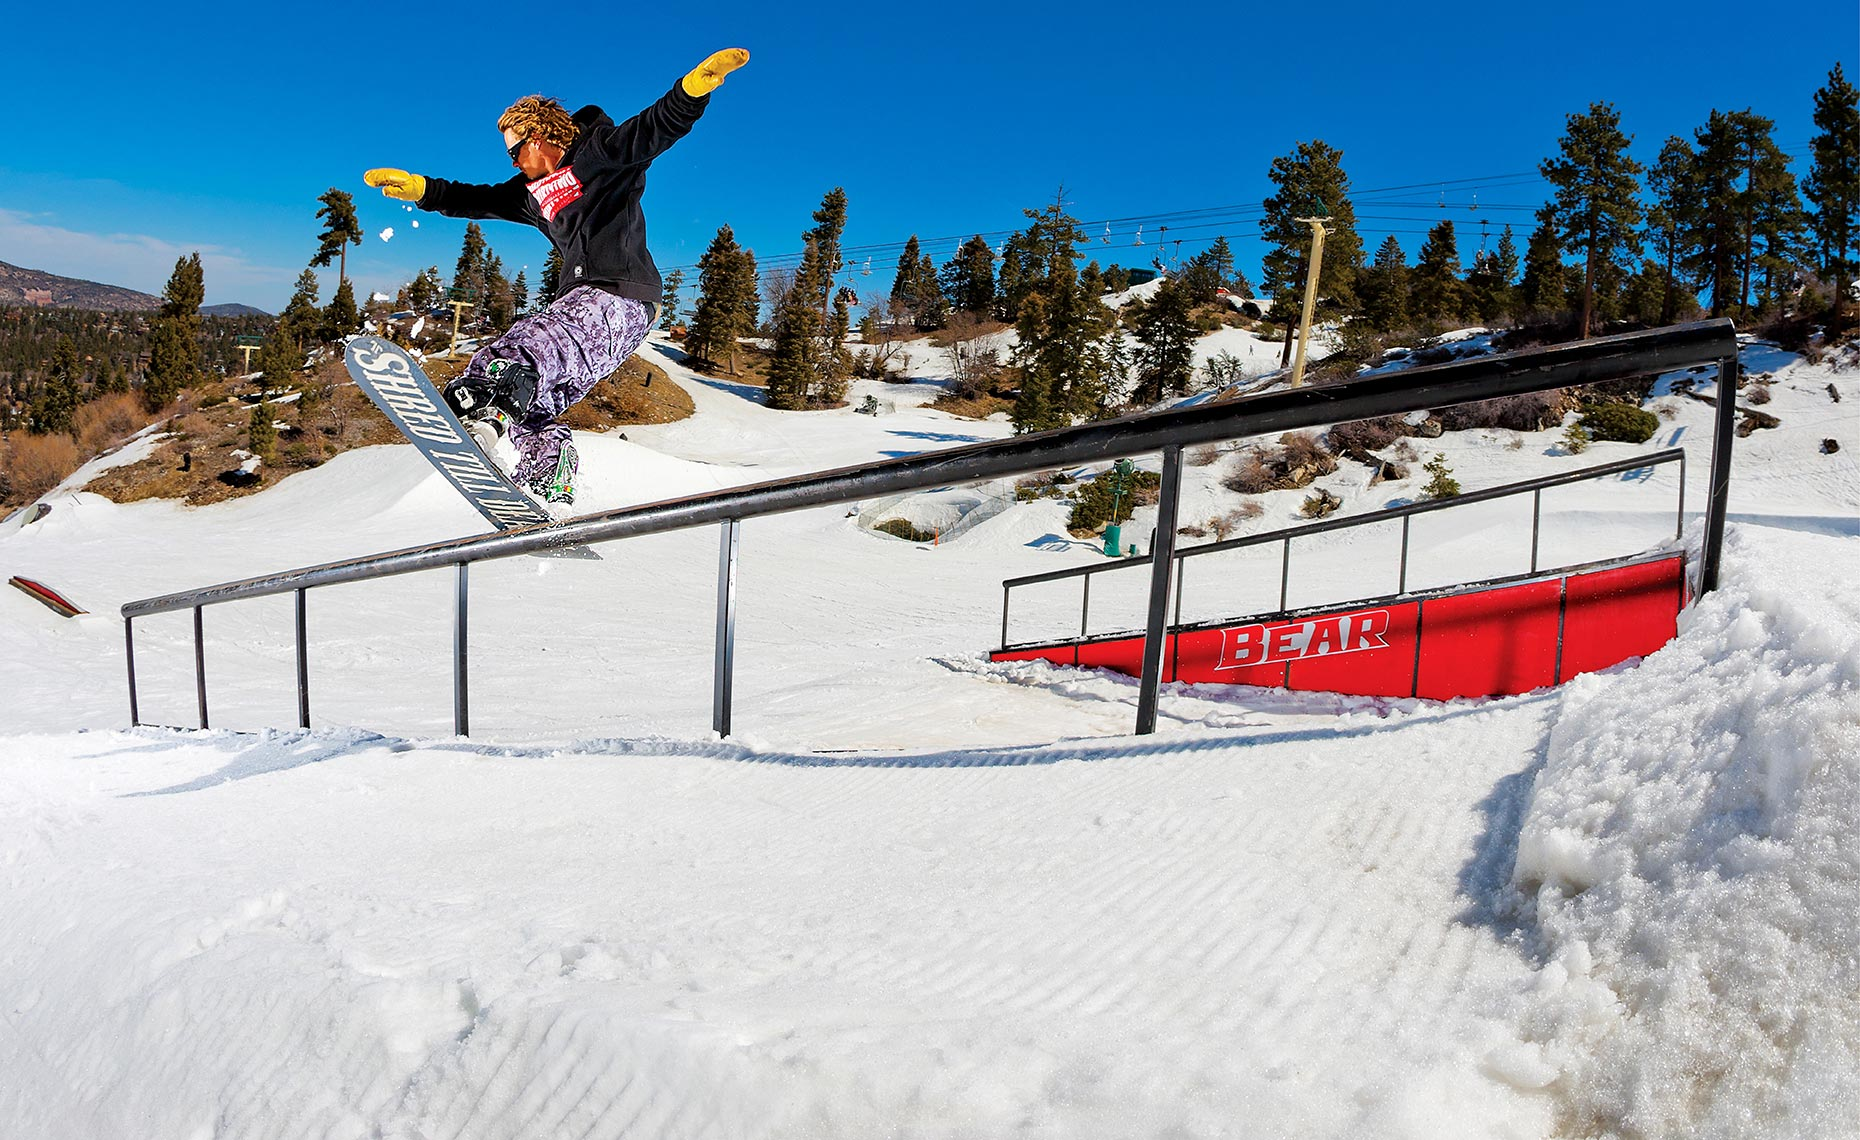 24_Chris_Bradshaw_Bear_Mtn_California_Park_Sessions_Snowboarding_Chris_Wellhausen_Photography.JPG